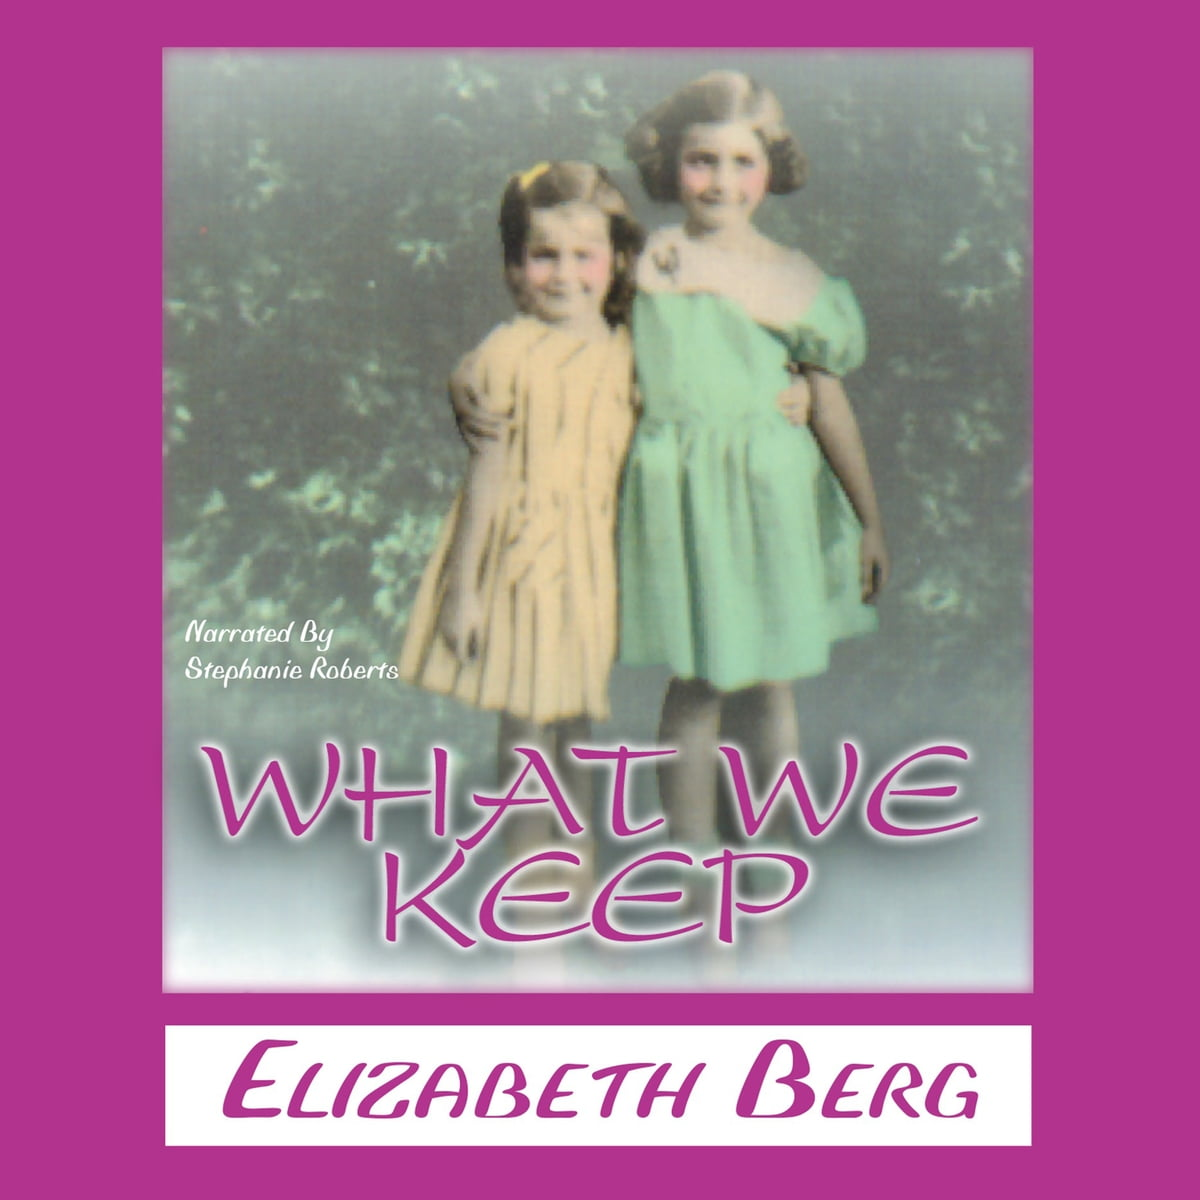 What We Keep Hrbuch Von Elizabeth Berg 9781602832381 Rakuten Kobo